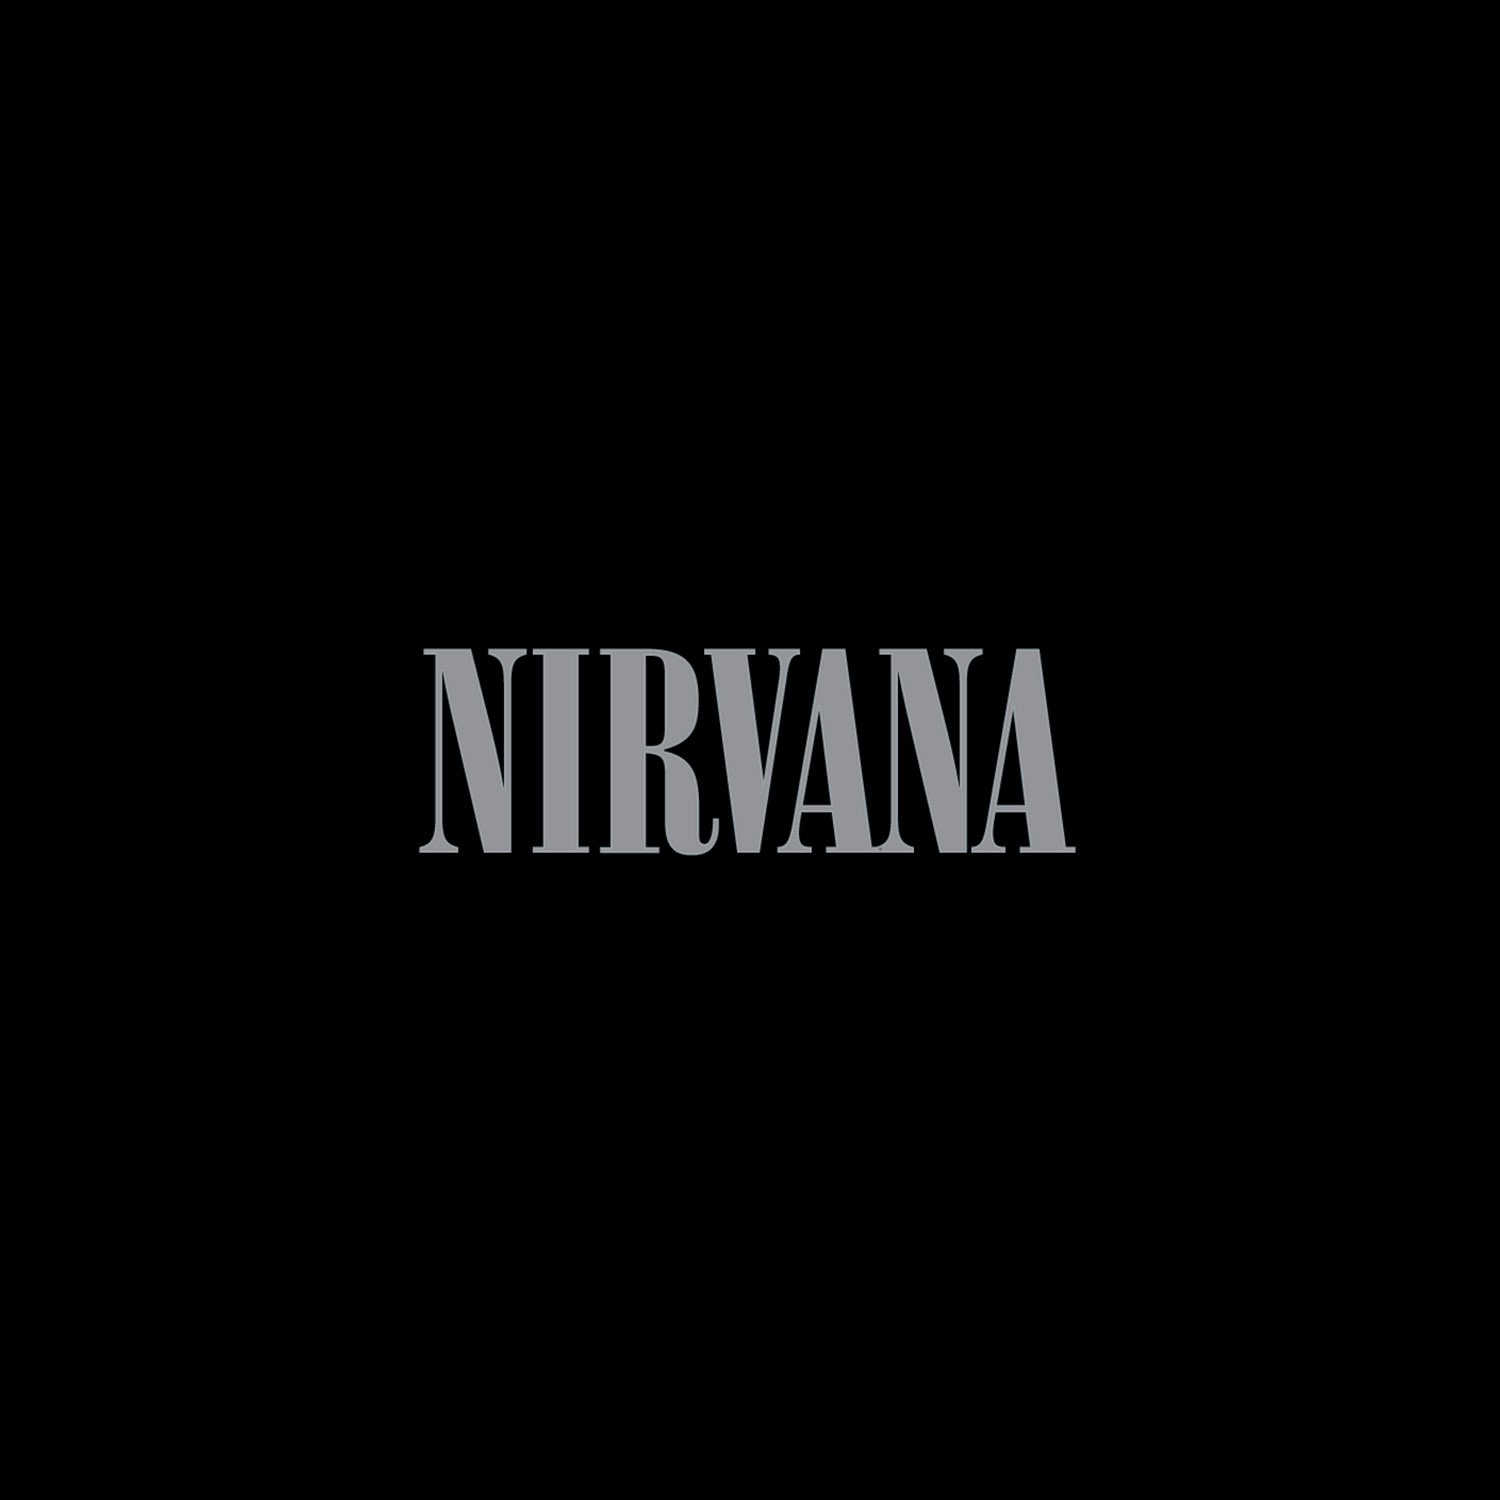 File:Nirvana album cover.jpg